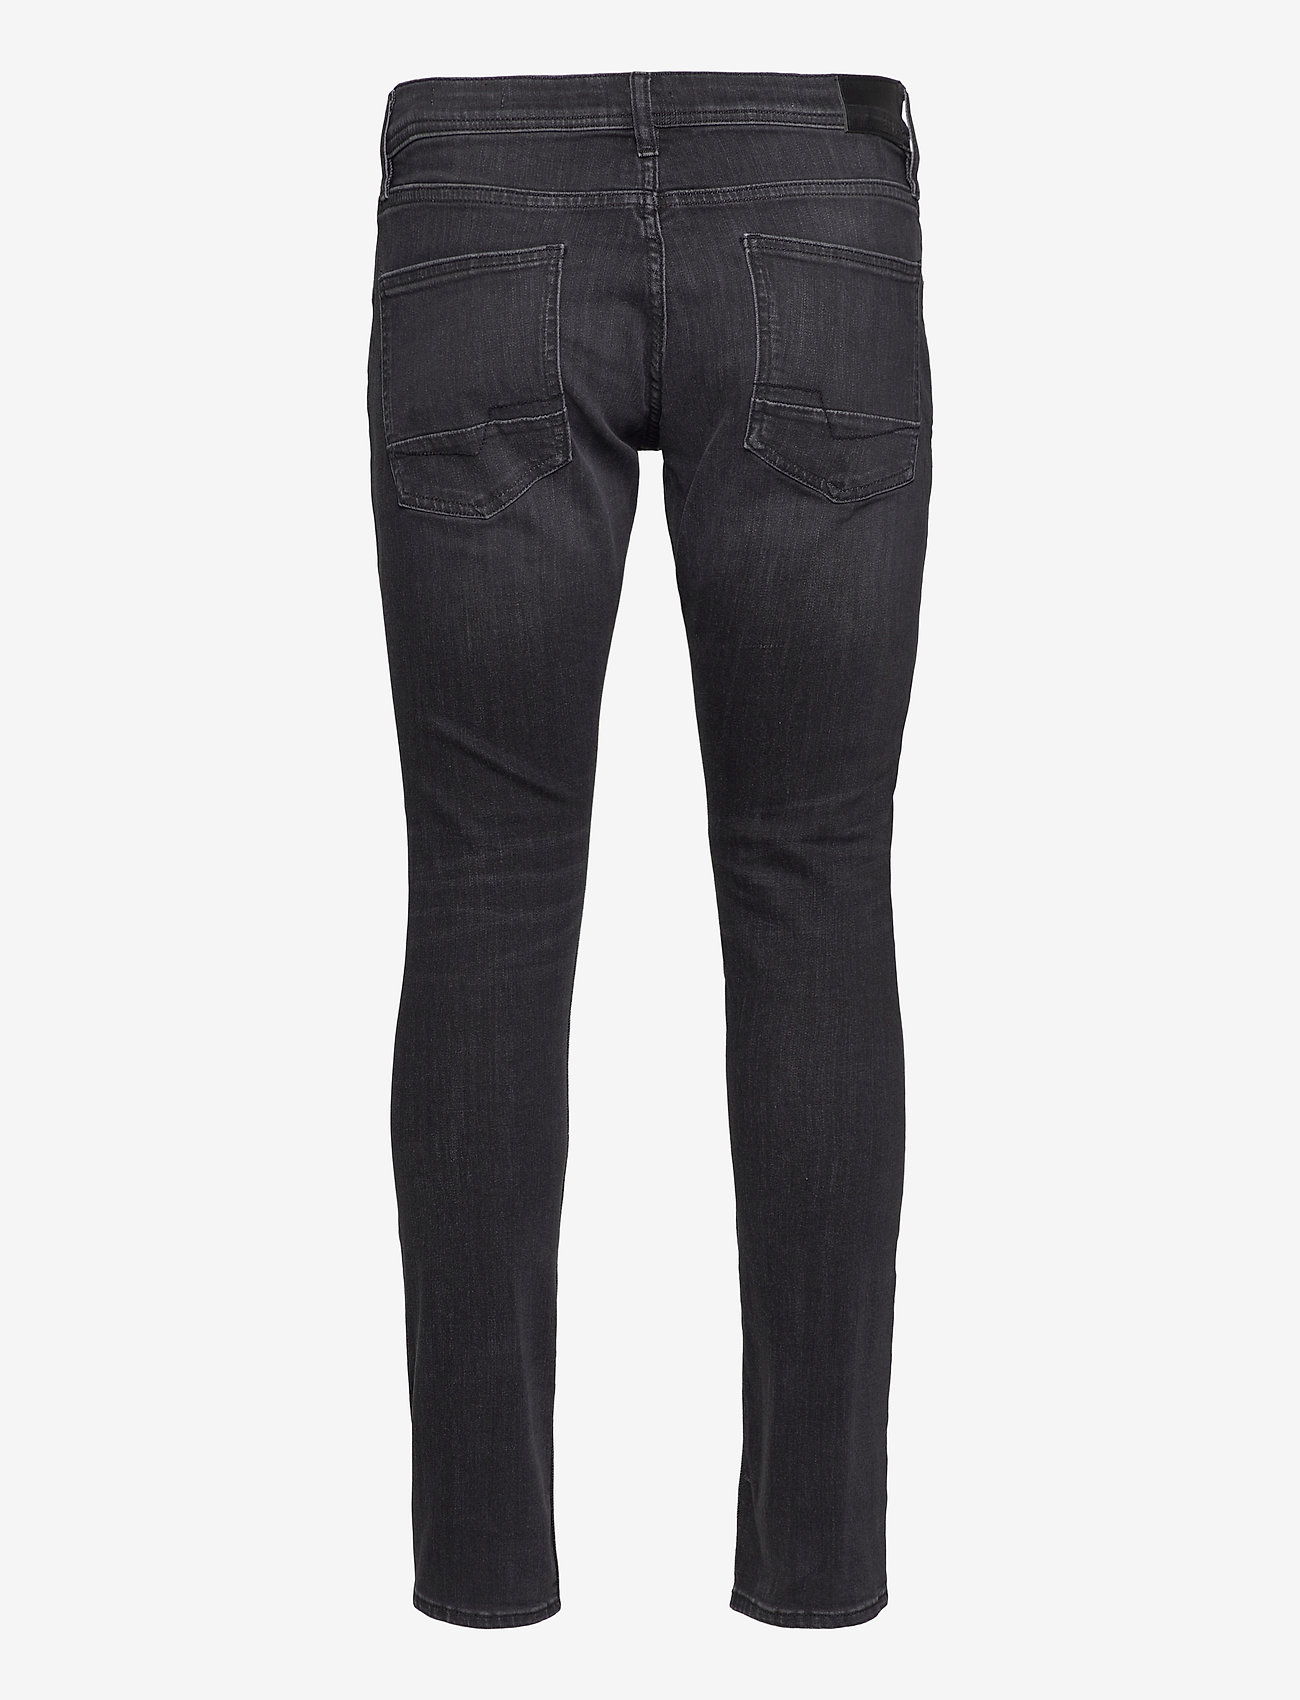 Esprit Casual Pants denim - Jeans GREY MEDIUM WASH - Menn Klær